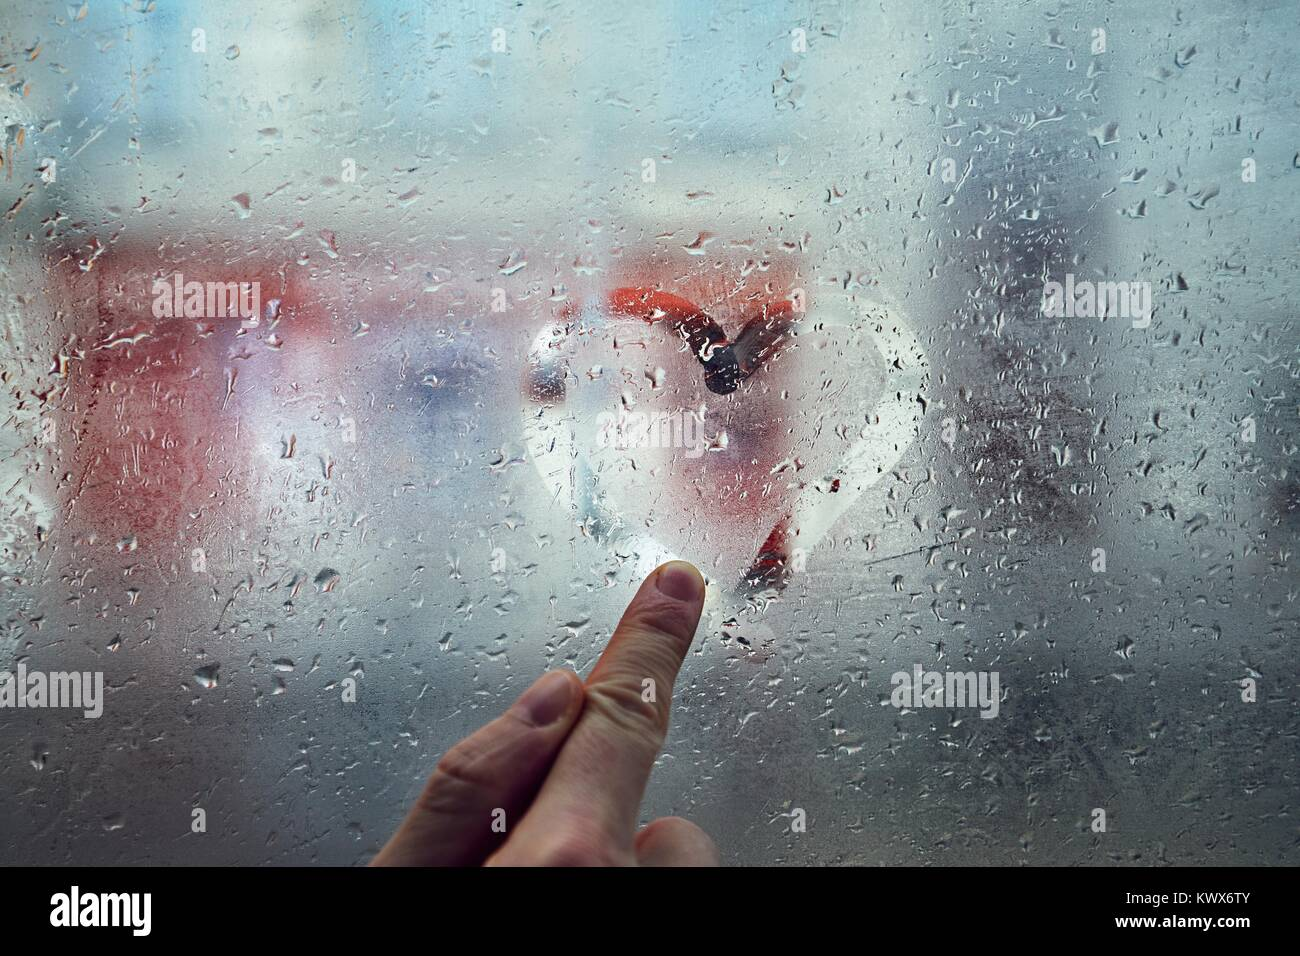 Finger of the young man drawing heart shape on the window with raindrops against city street. Stock Photo